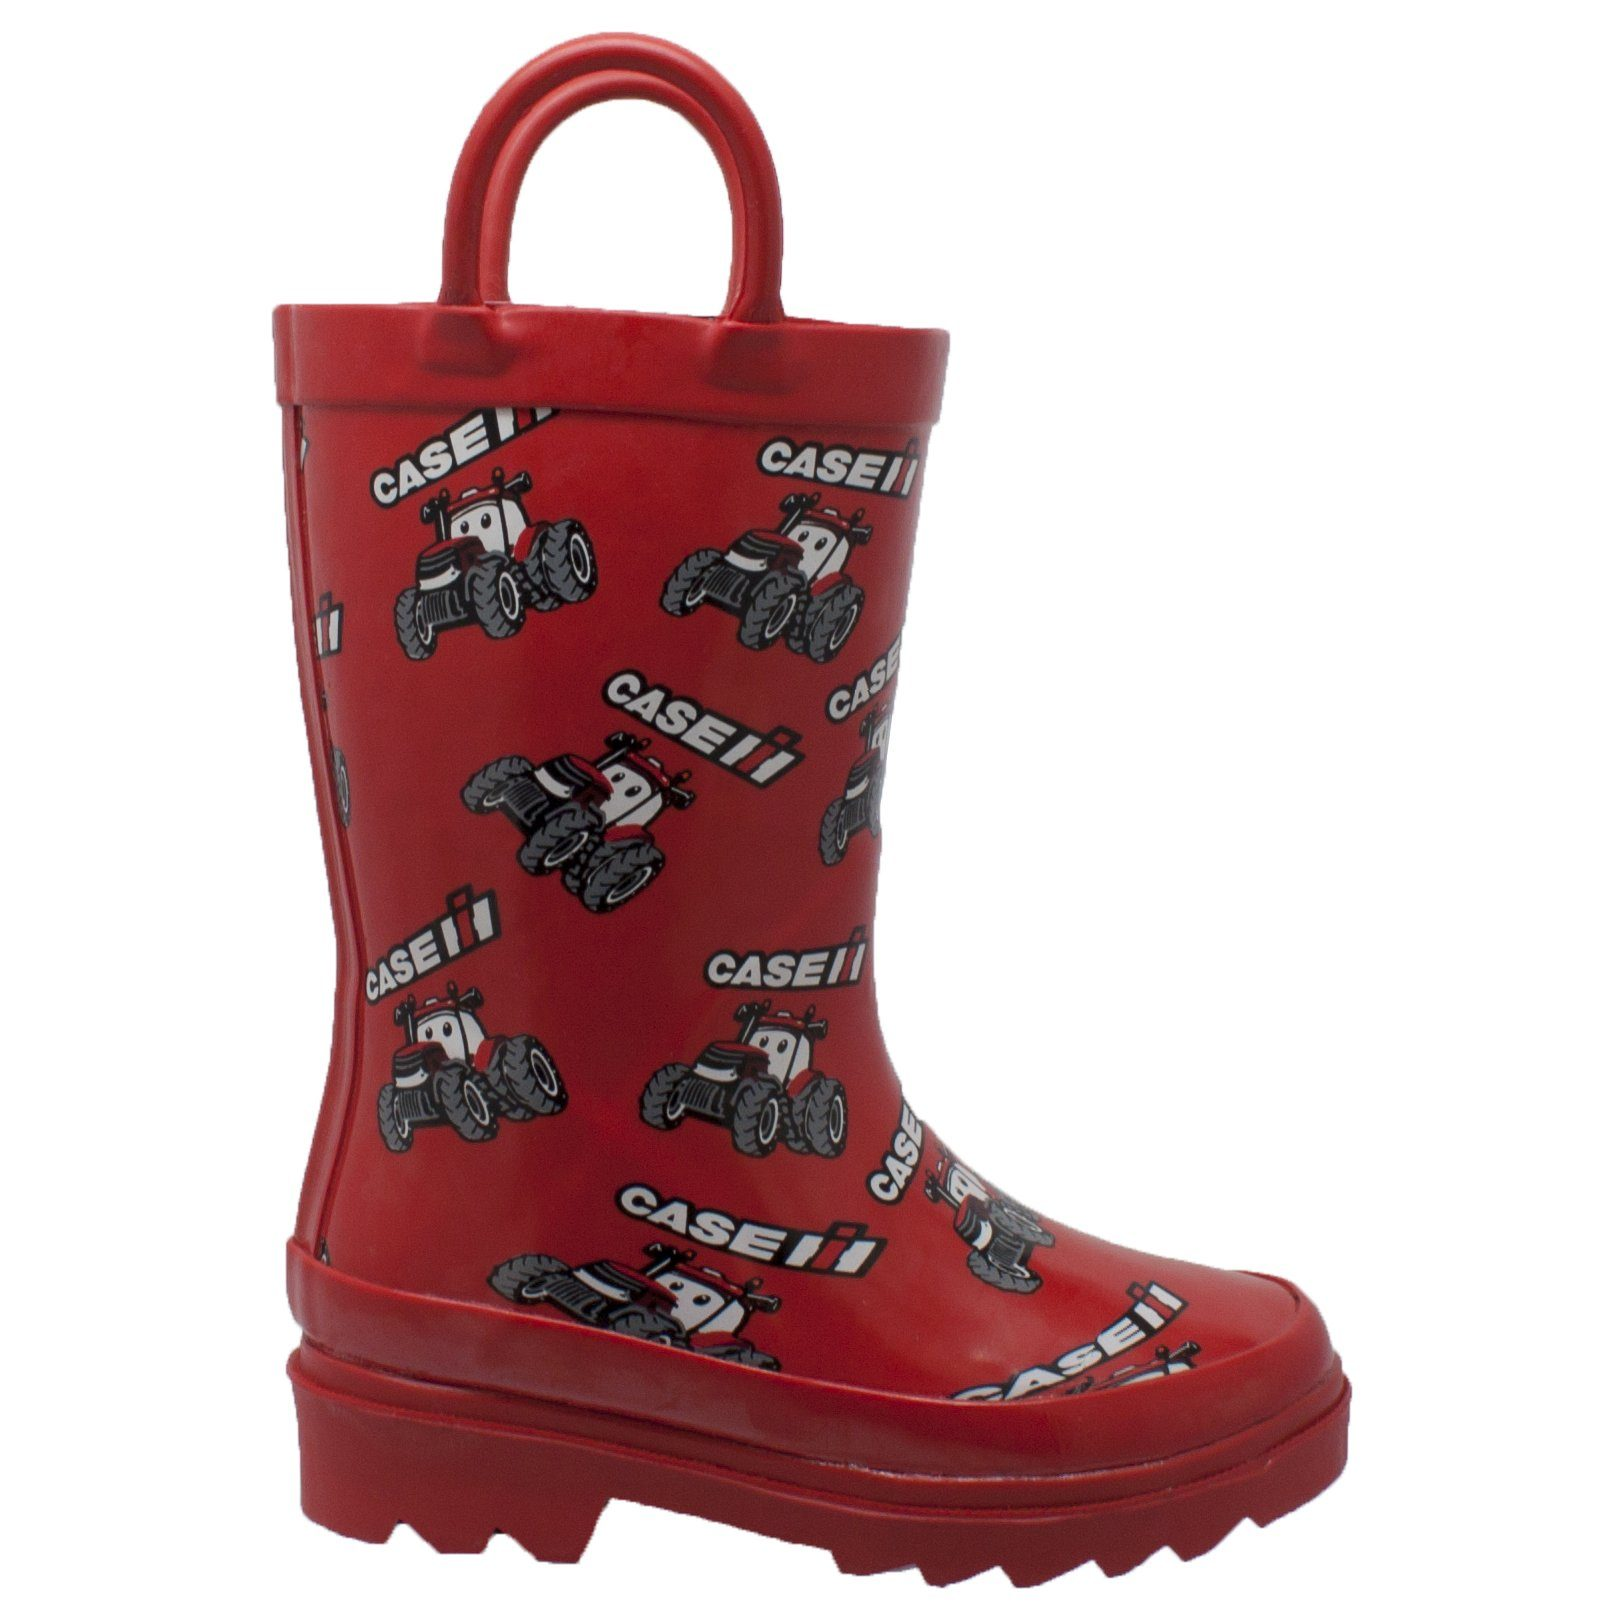 Children's Boots - Toddler's Big Red Rubber Boots